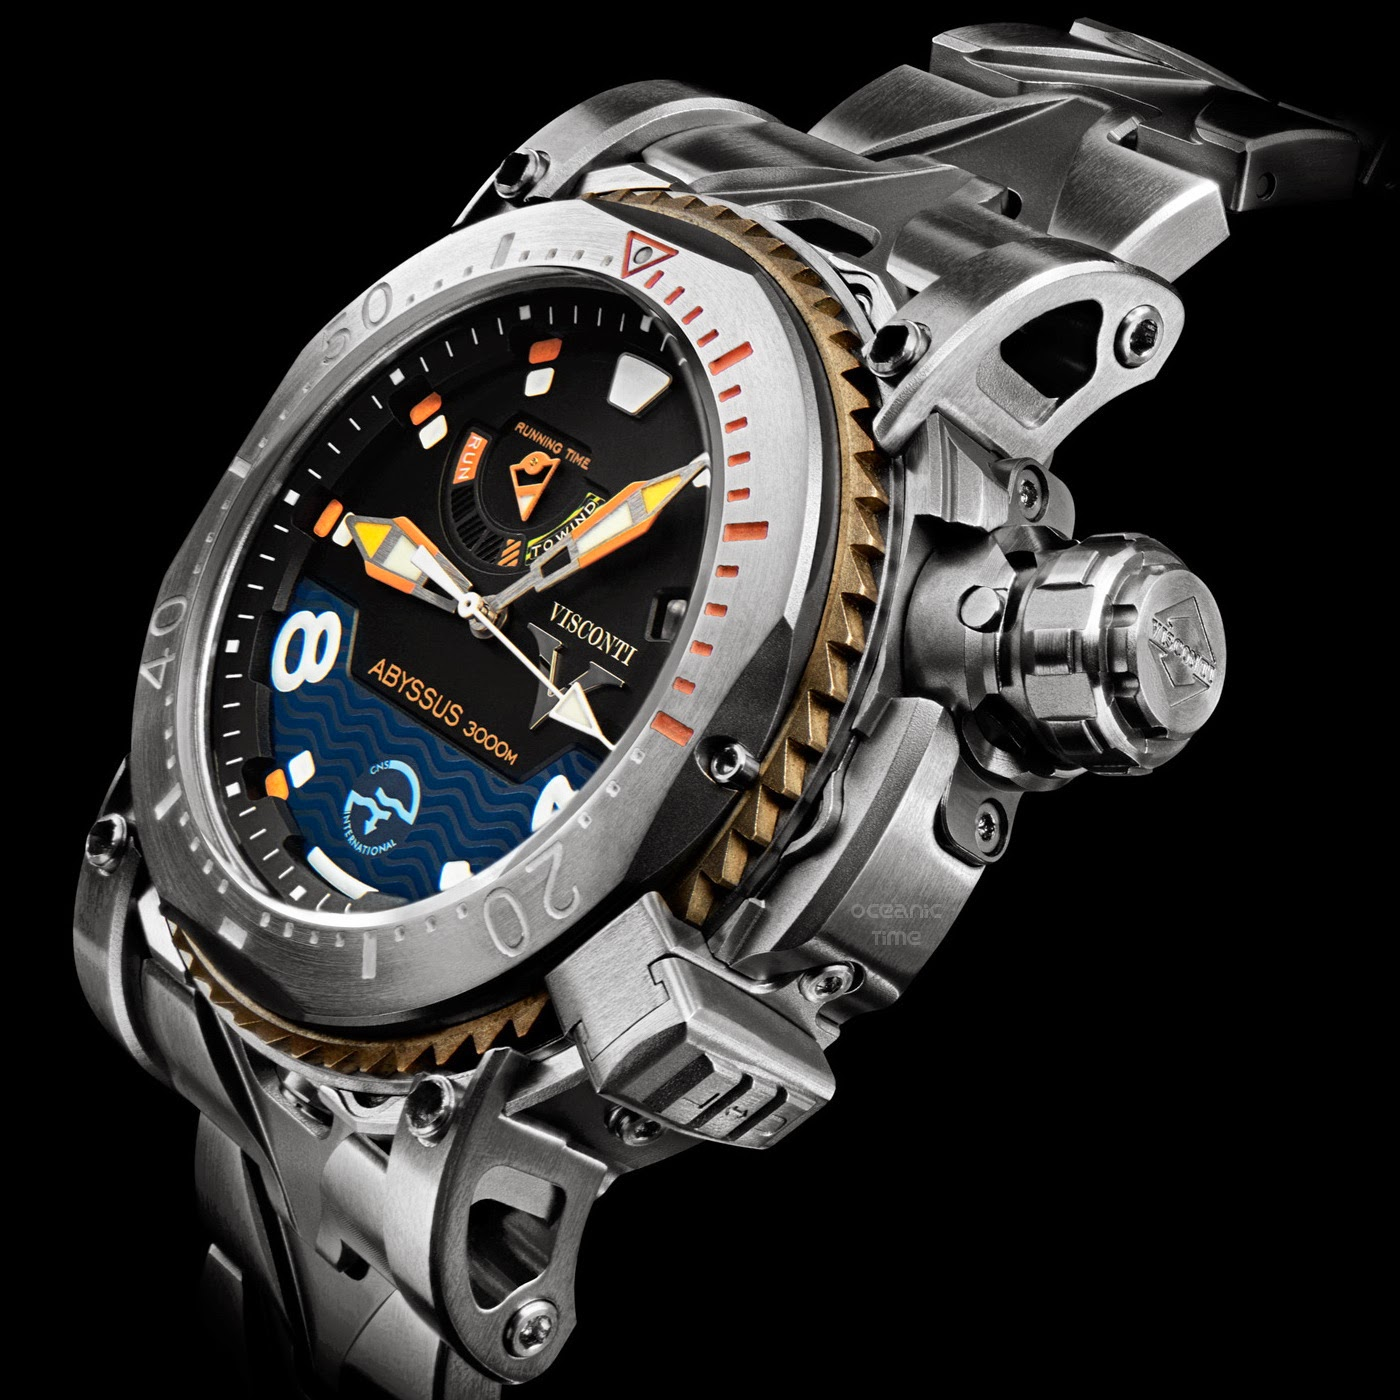 Oceanictime visconti scuba abyssus 3000m continuation of a florentine dive watch legacy for Dive watch